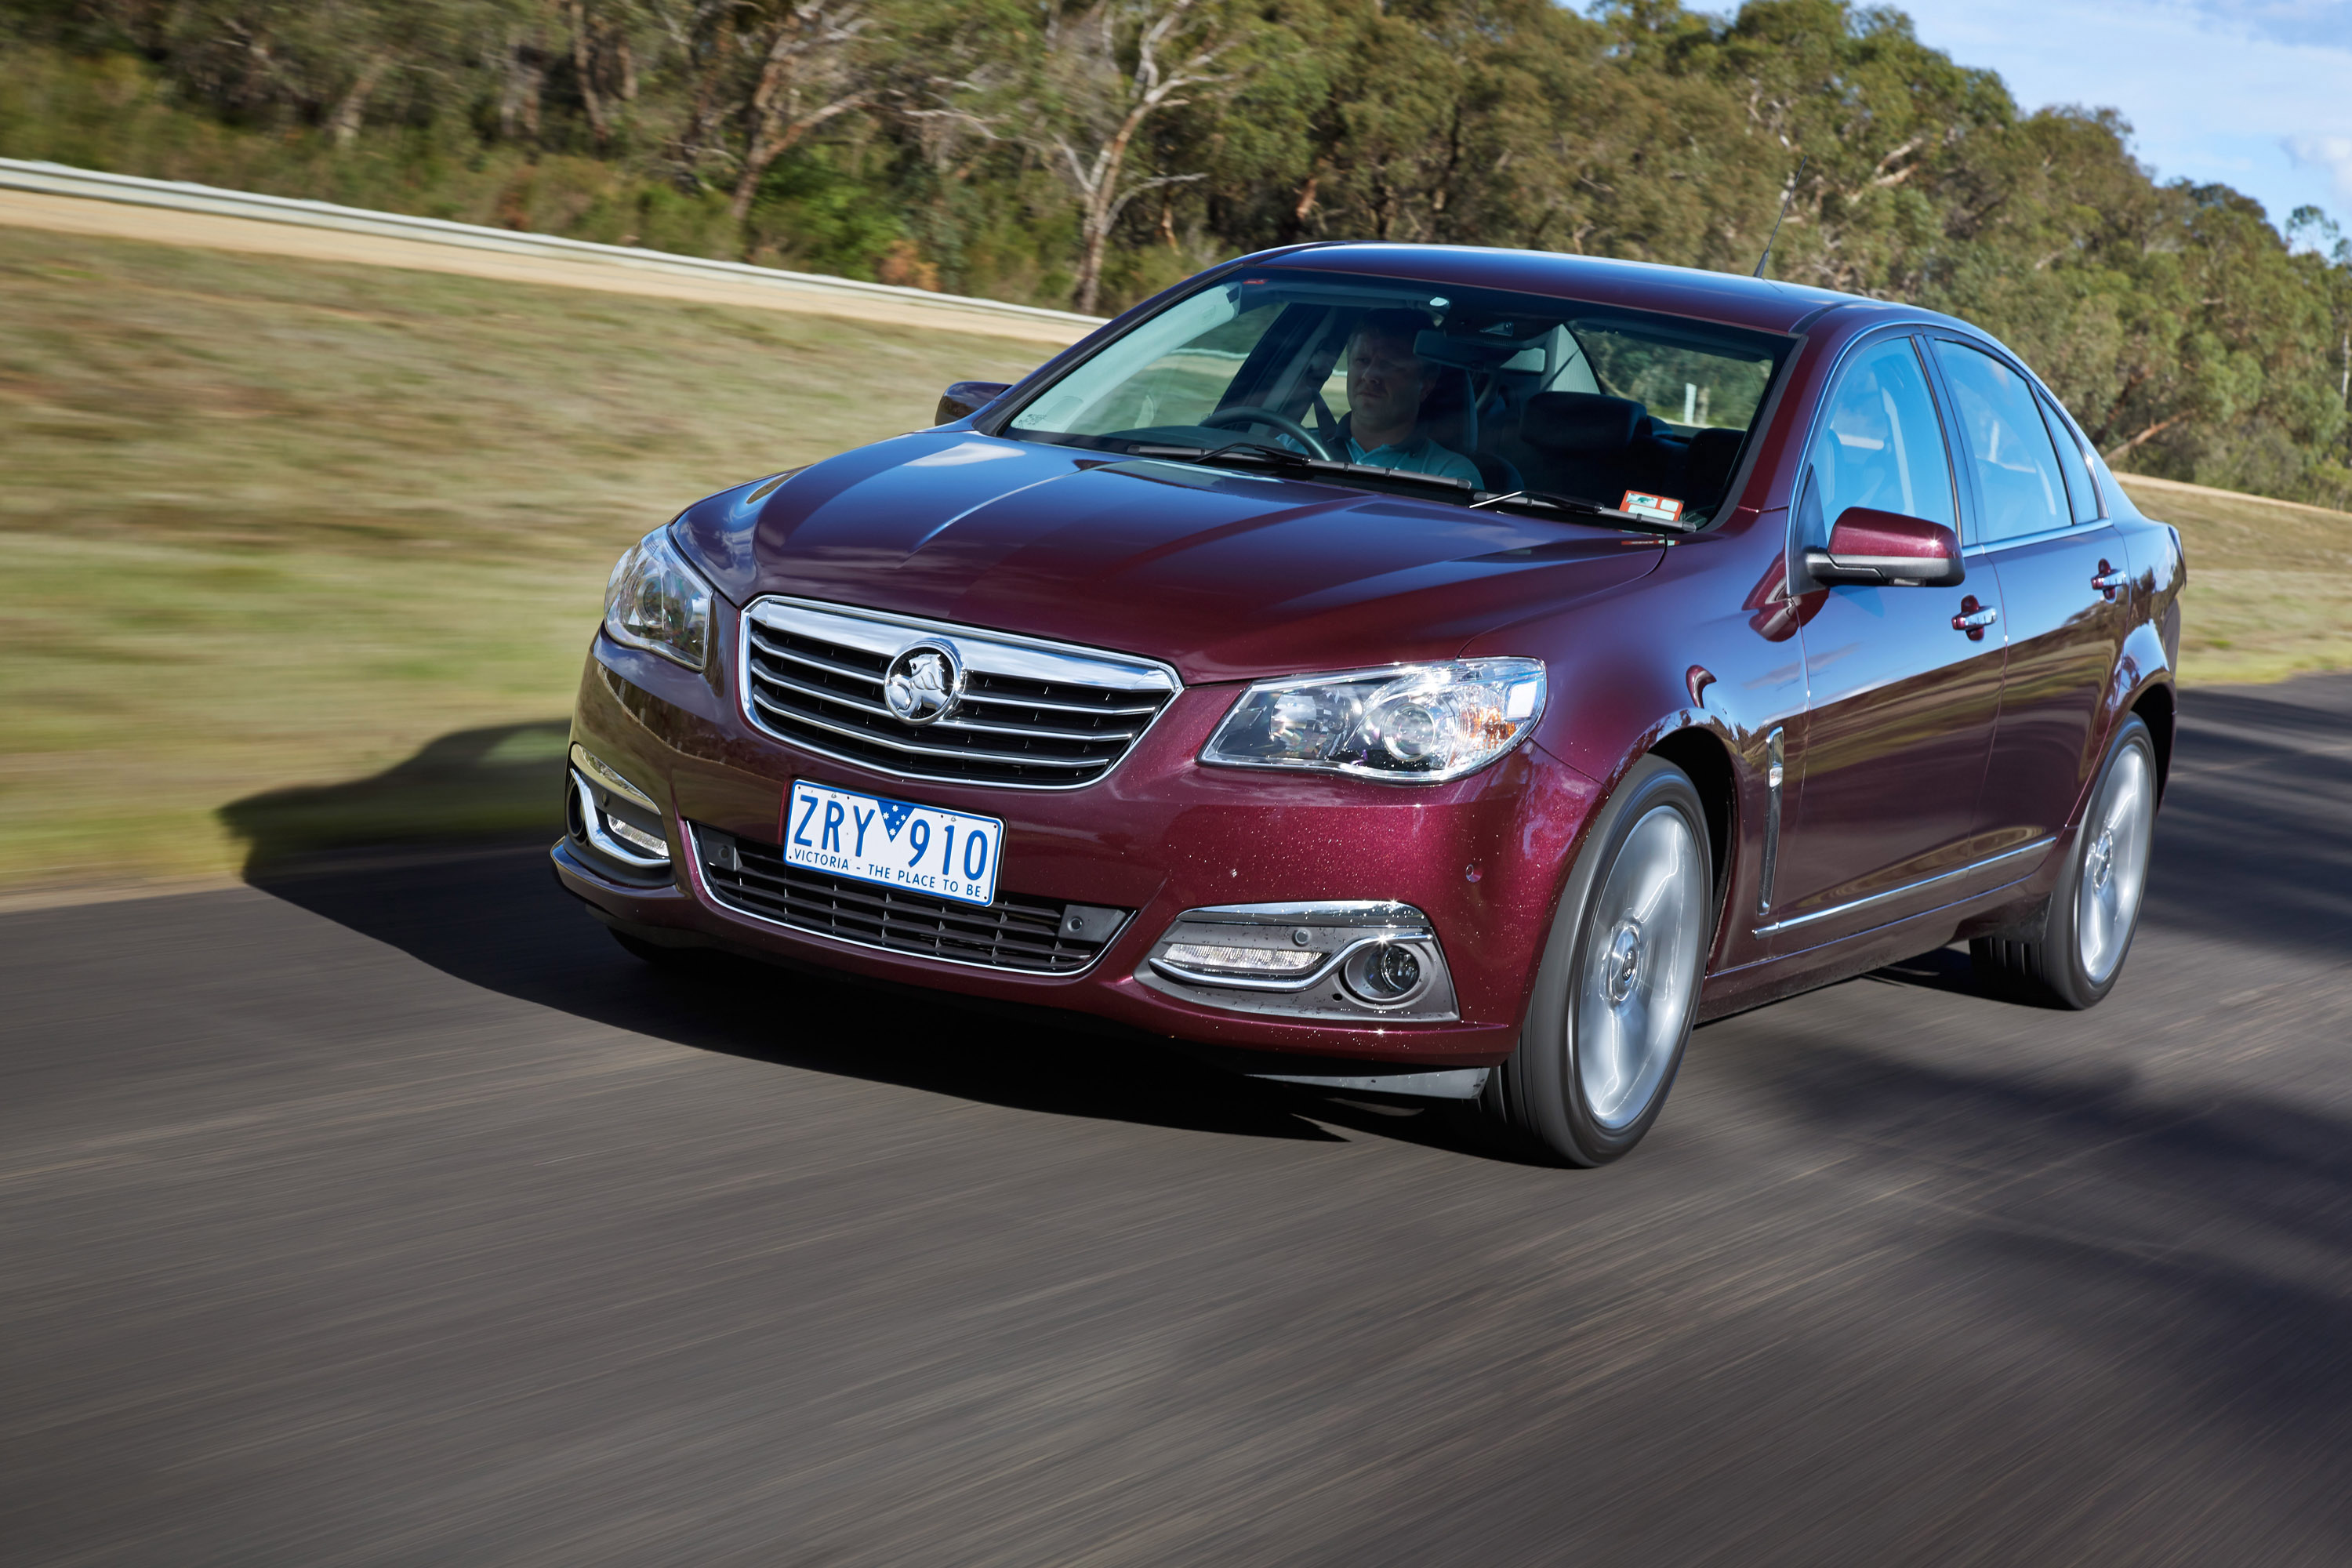 2014 holden vf commodore calais v image collections hd cars 2014 holden vf commodore calais v hd pictures carsinvasion 2014 holden vf commodore calais v thumbnail vanachro Images